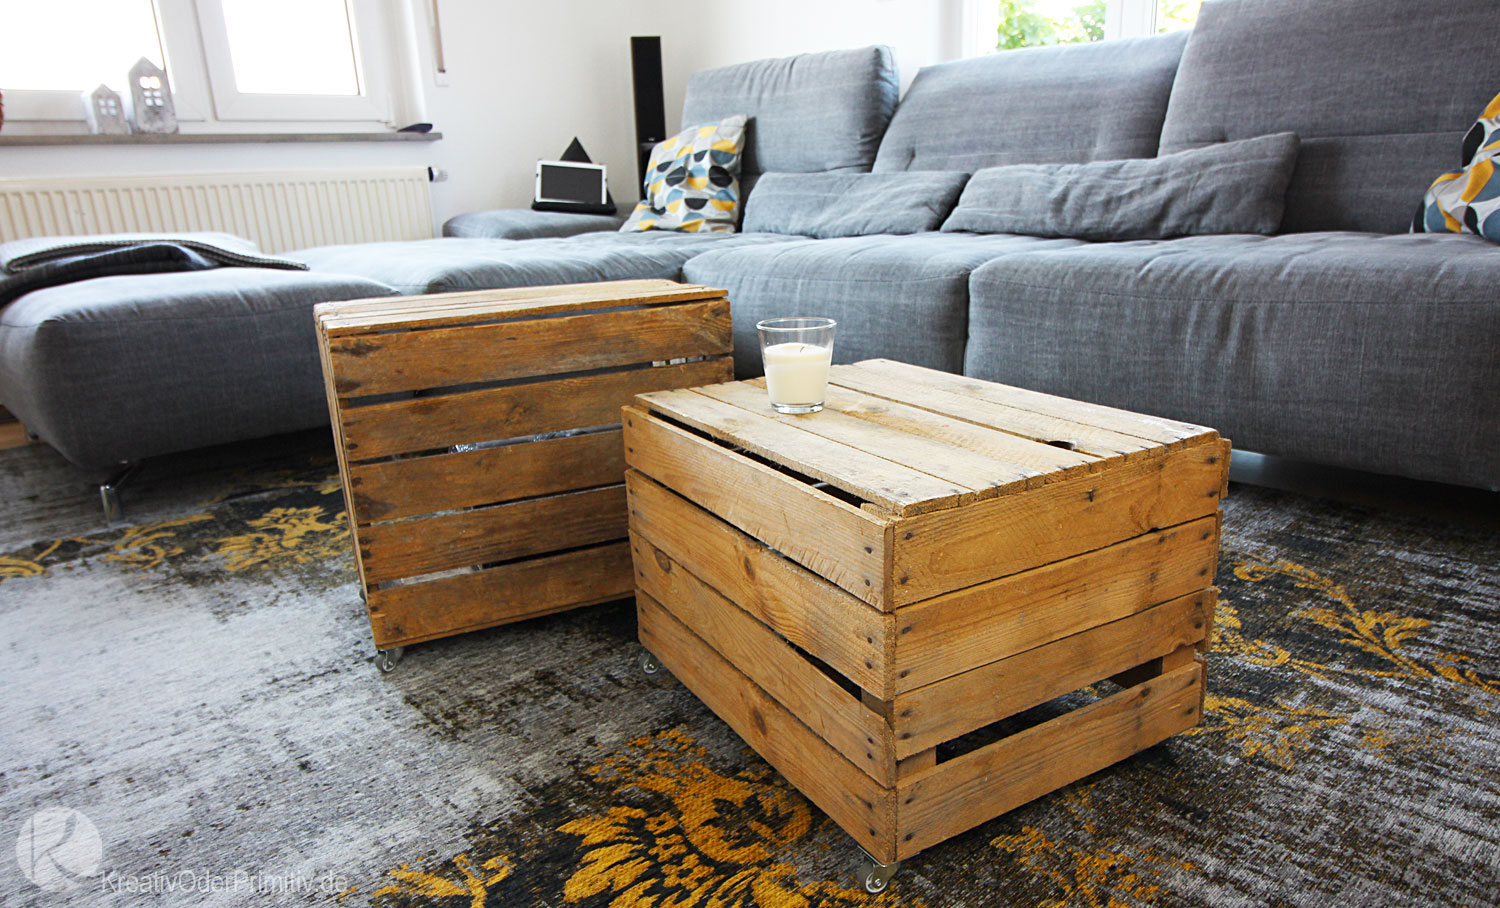 kreativ oder primitiv couchtisch aus obstkisten. Black Bedroom Furniture Sets. Home Design Ideas